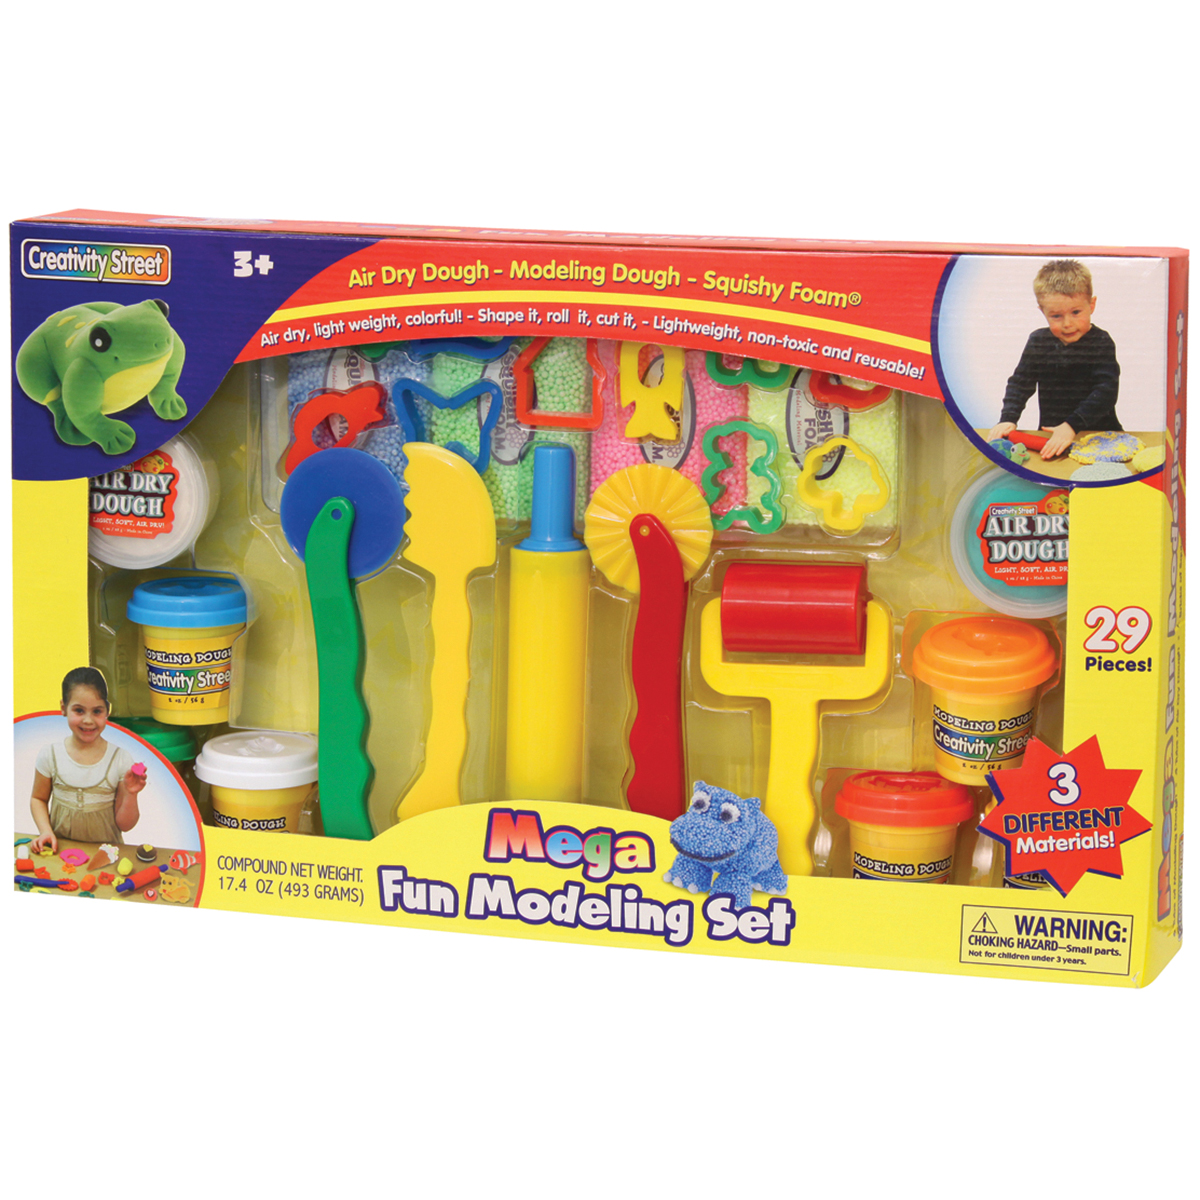 Mega Fun Modeling Set-